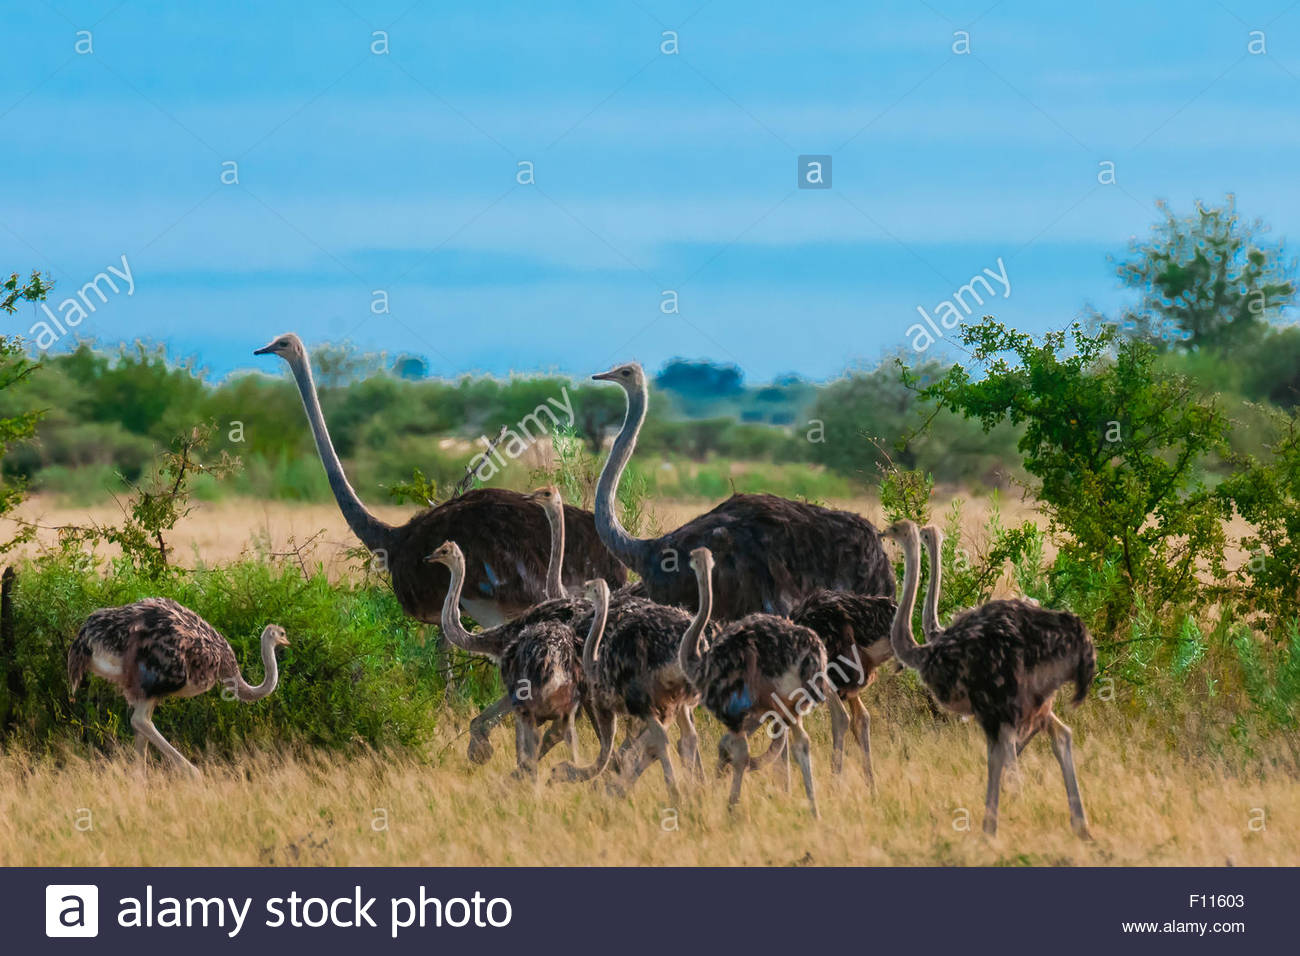 Herd of ostriches, Nxai Pan National Park, Botswana. - Stock Image